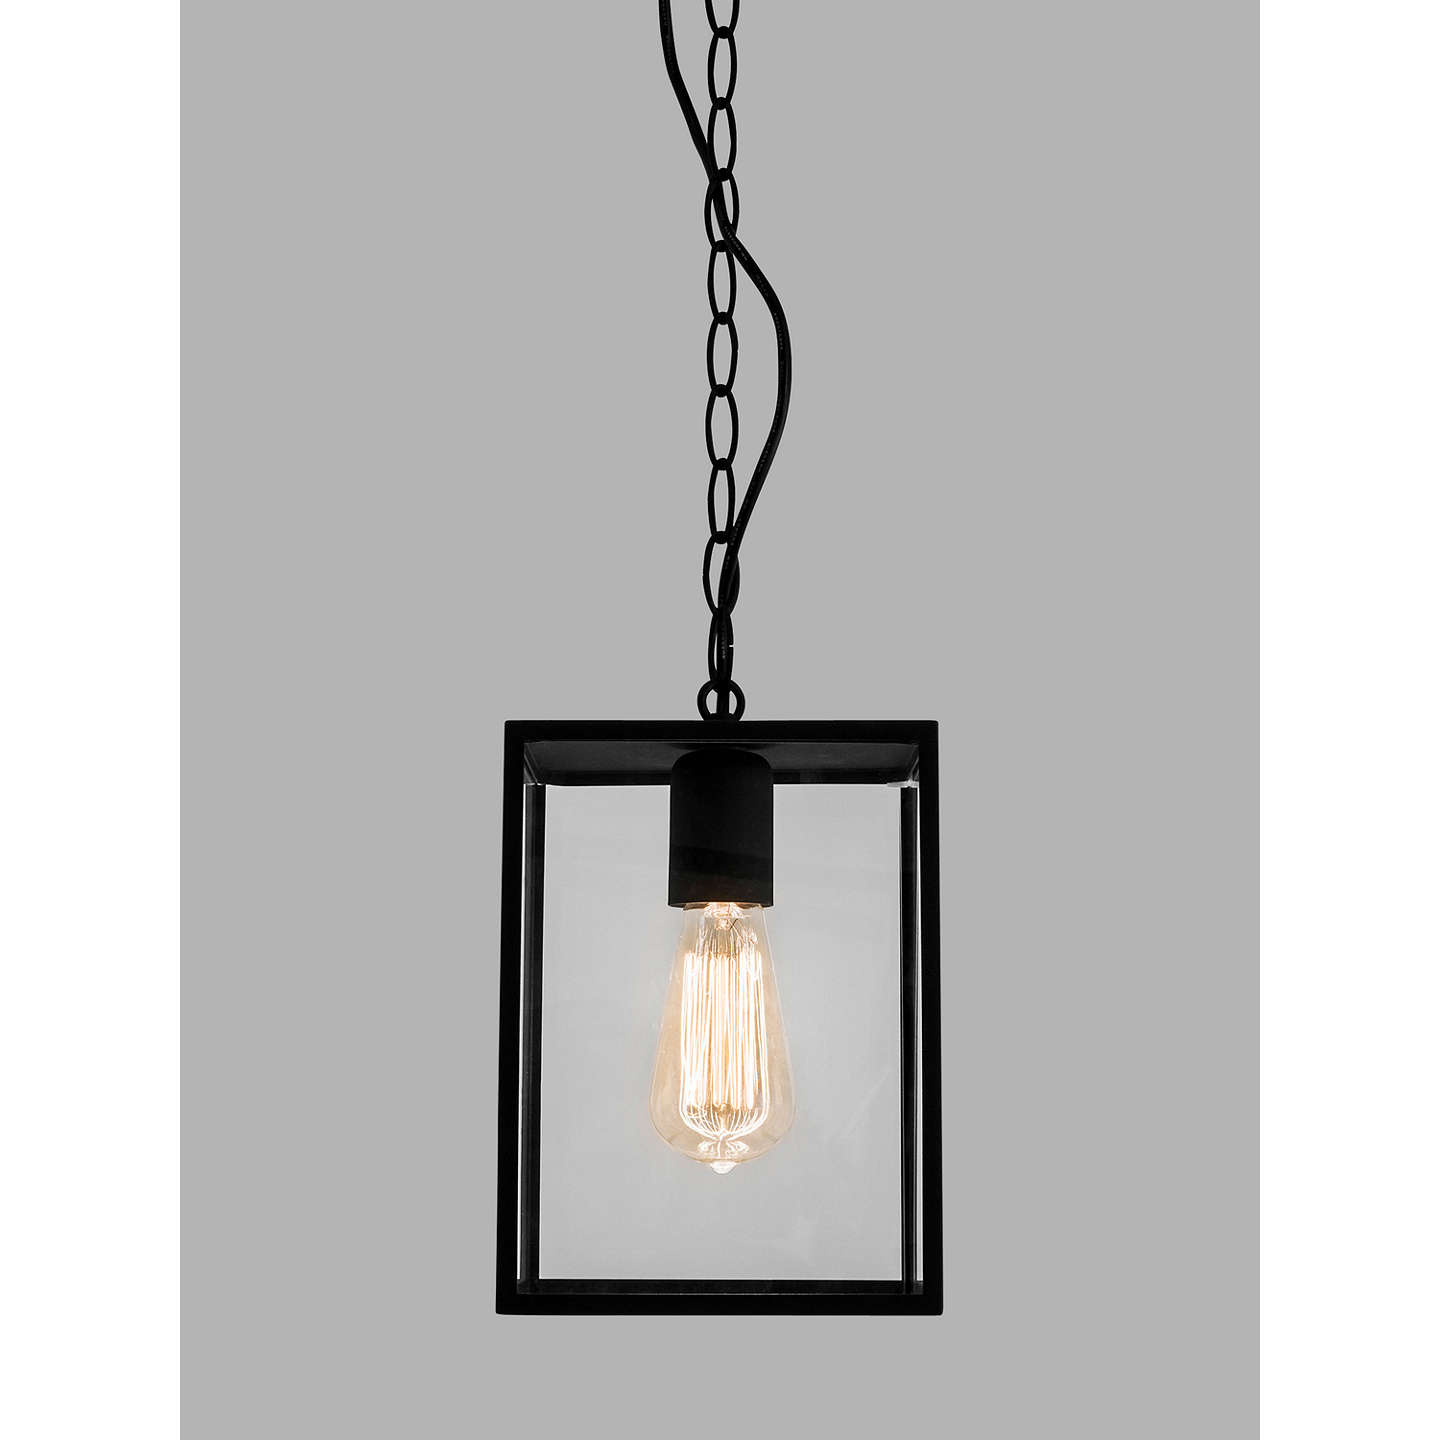 Astro homefield outdoor pendant ceiling light black at john lewis buyastro homefield outdoor pendant ceiling light black online at johnlewis mozeypictures